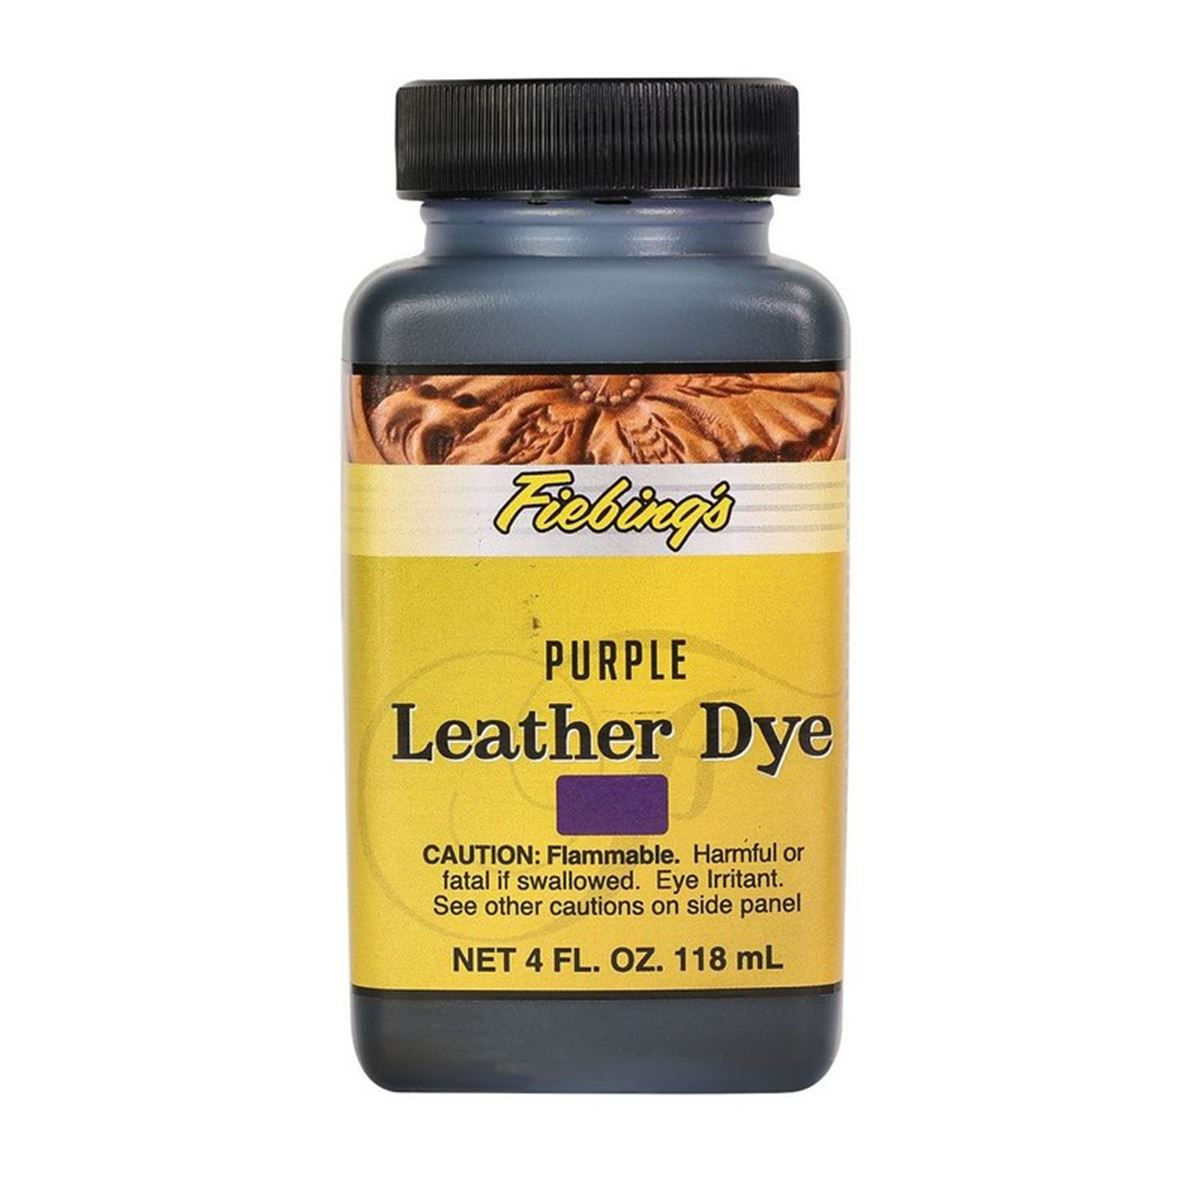 Teinture pour cuir FIEBING'S Leather dye - VIOLET - PURPLE